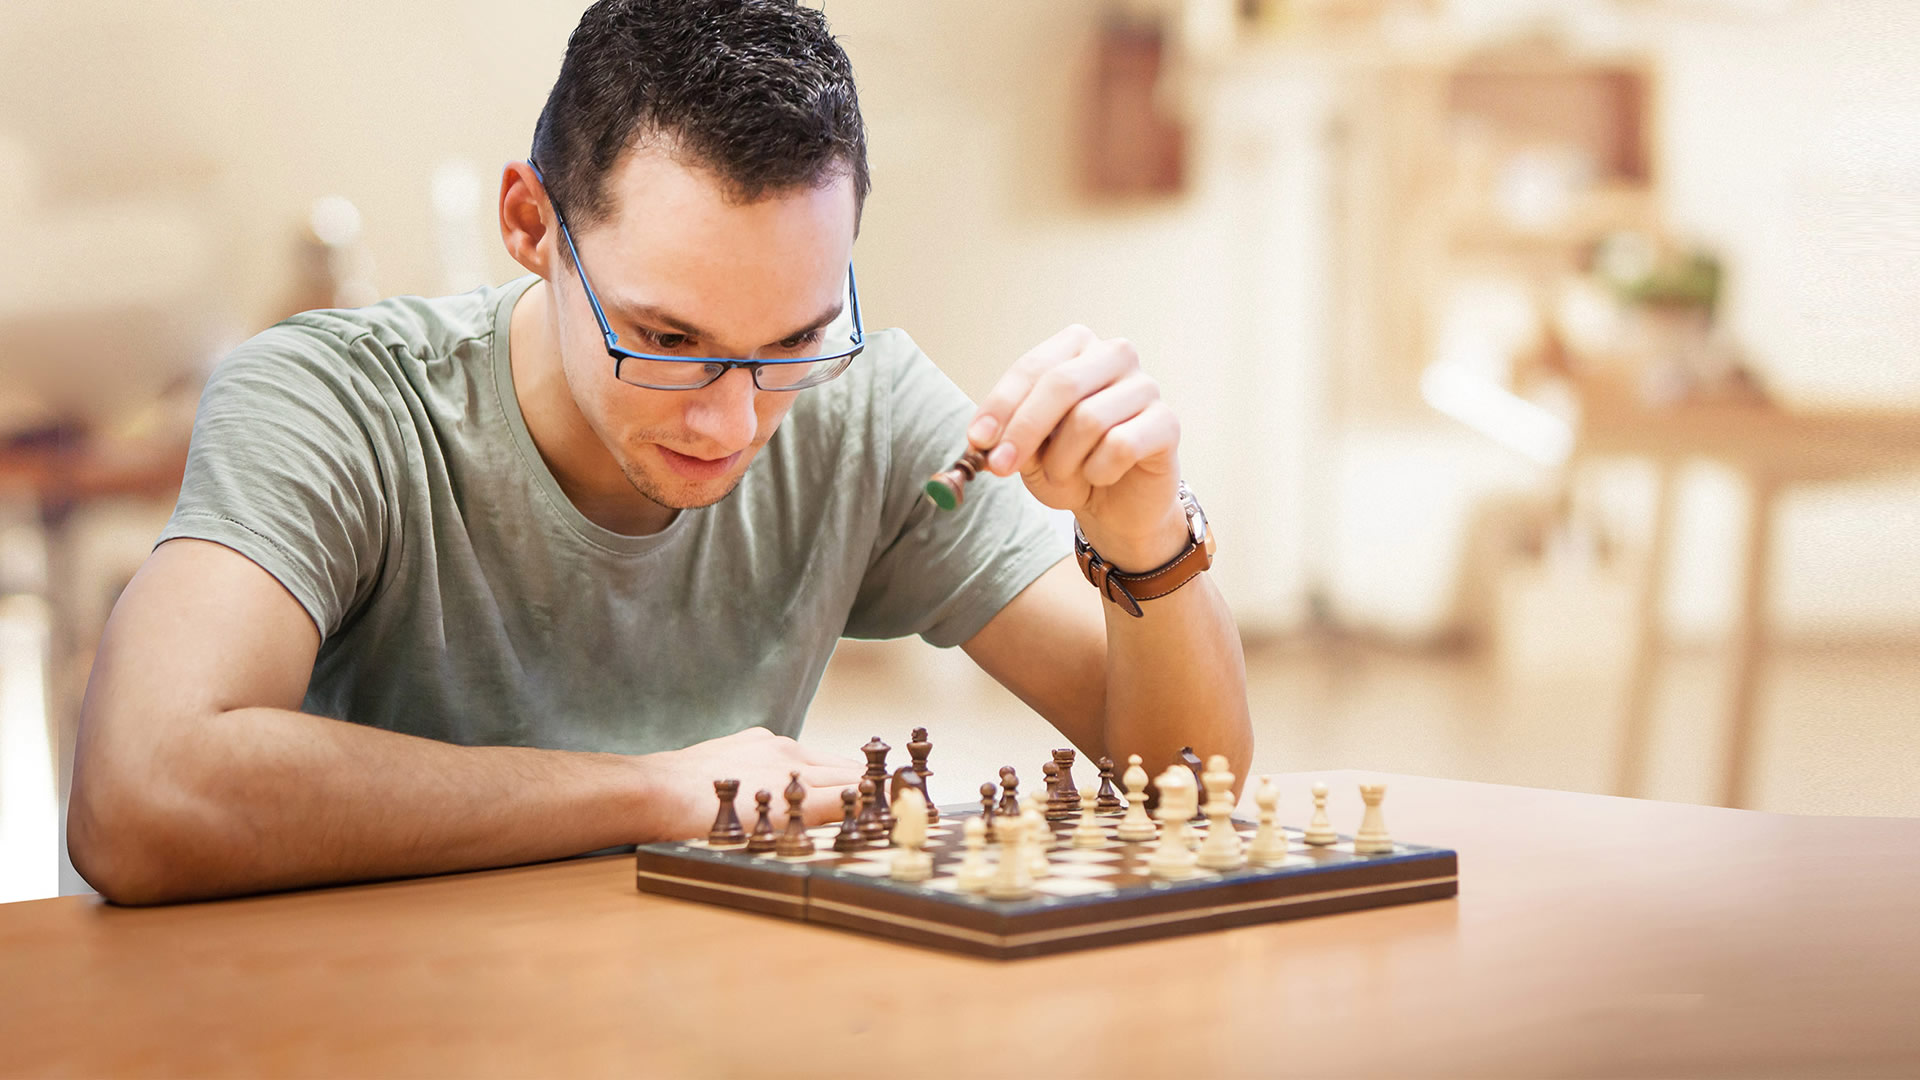 Ľubomír Maron, Chess player and Professional Software Engineer